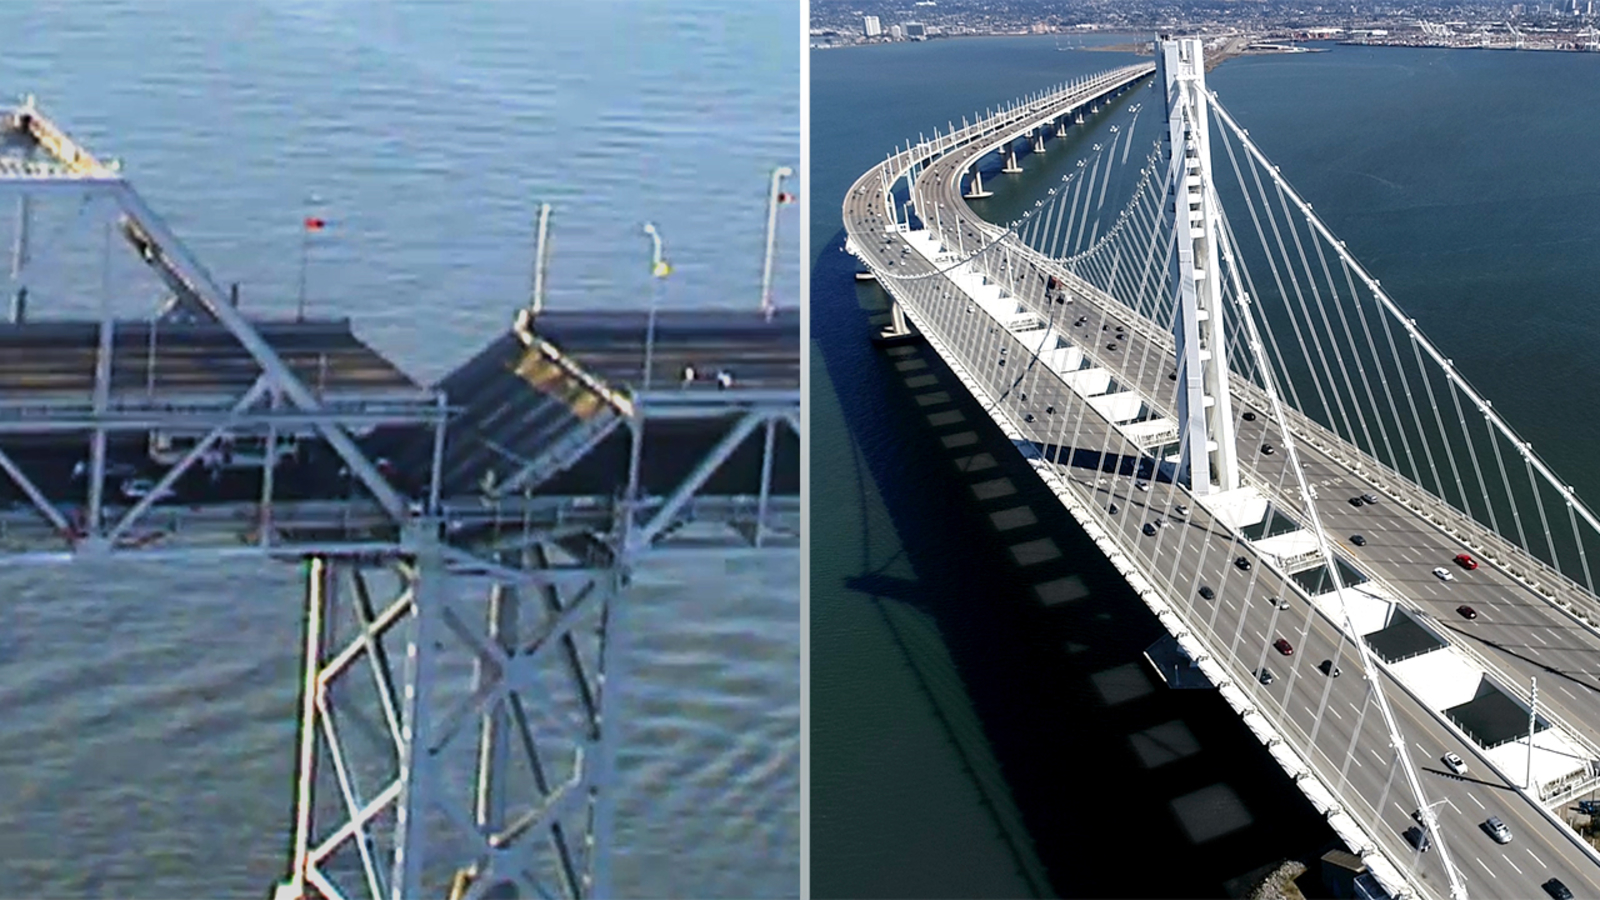 The Earthquake Effect Bridging The Faults The Catastrophic Fall And Slow Rise Of The Bay Bridge After Loma Prieta Abc7 San Francisco